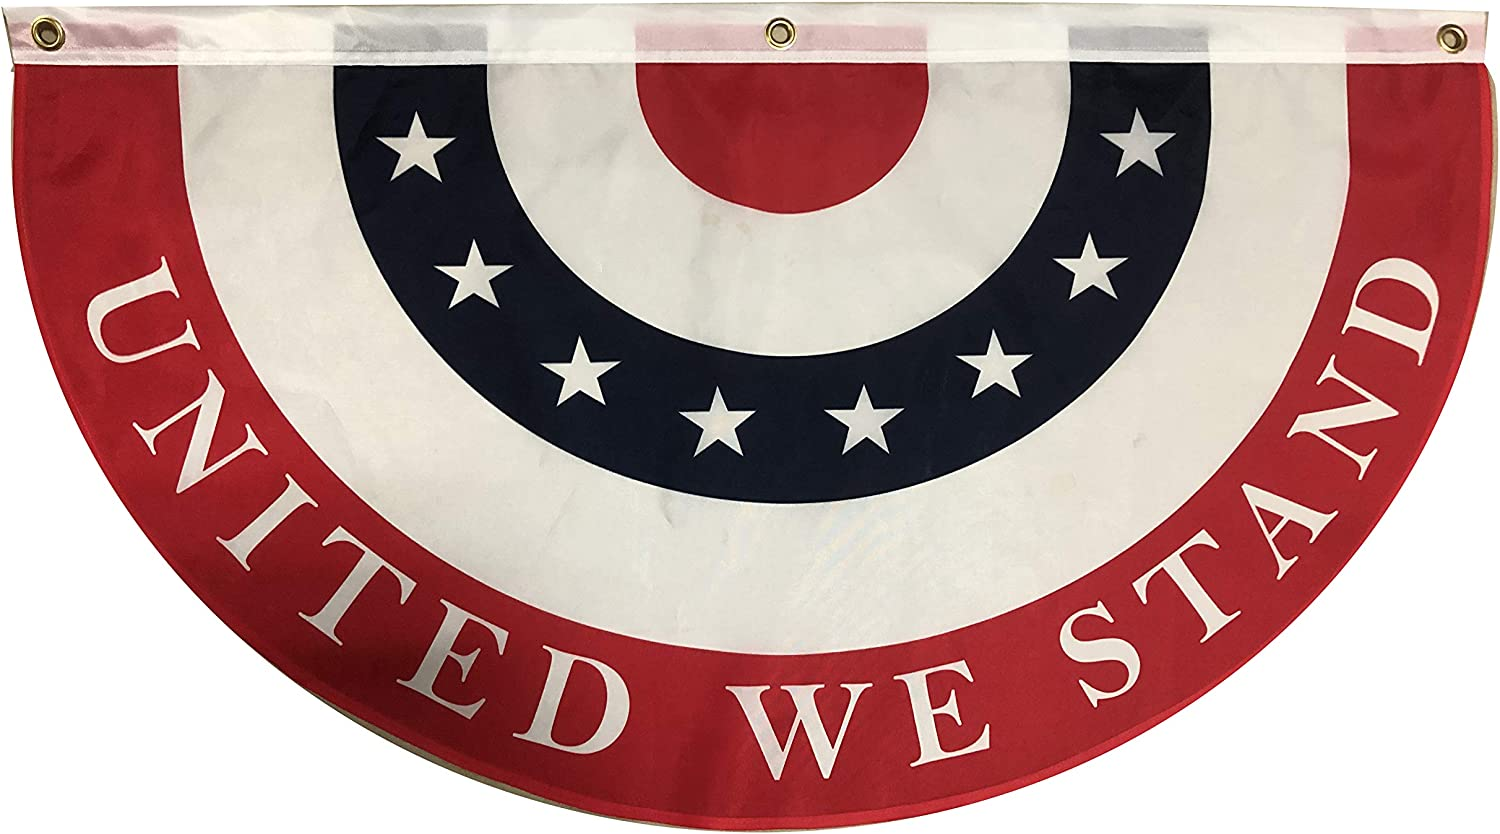 """GiftWrap Etc. United We Stand Bunting Flag – 18"""" x 36"""", American Flag Decor, 4th of July, President's Day, Veteran's Day, USA Red White Blue Outdoor Decor, Church, ROTC, Memorial Day"""